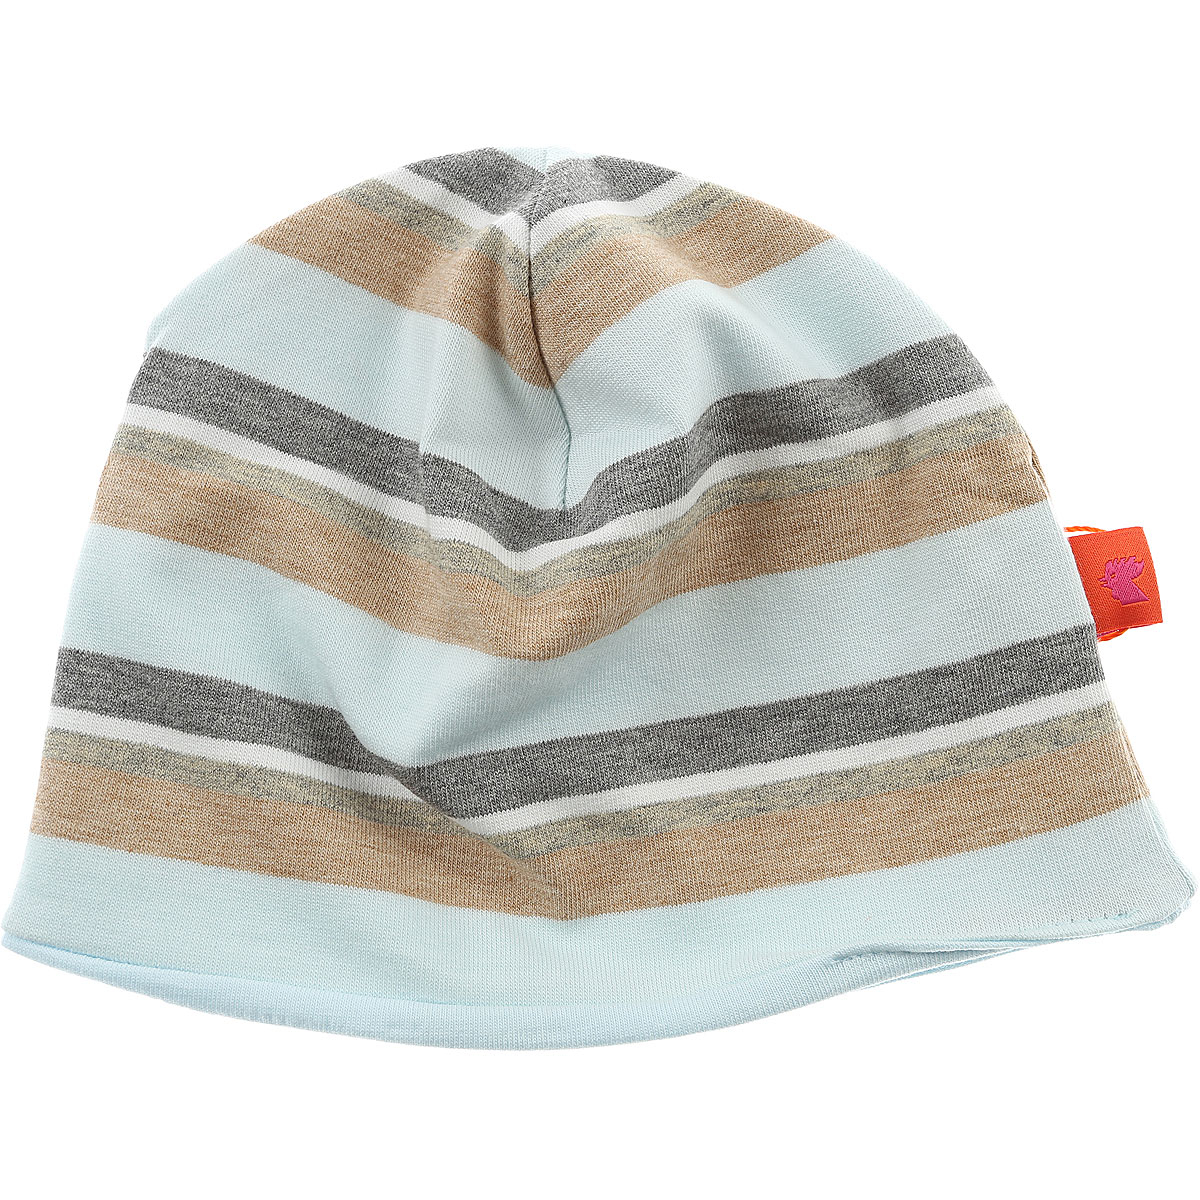 Gallo Baby Hats for Boys On Sale in Outlet Sky Blue DK - GOOFASH - Mens HATS